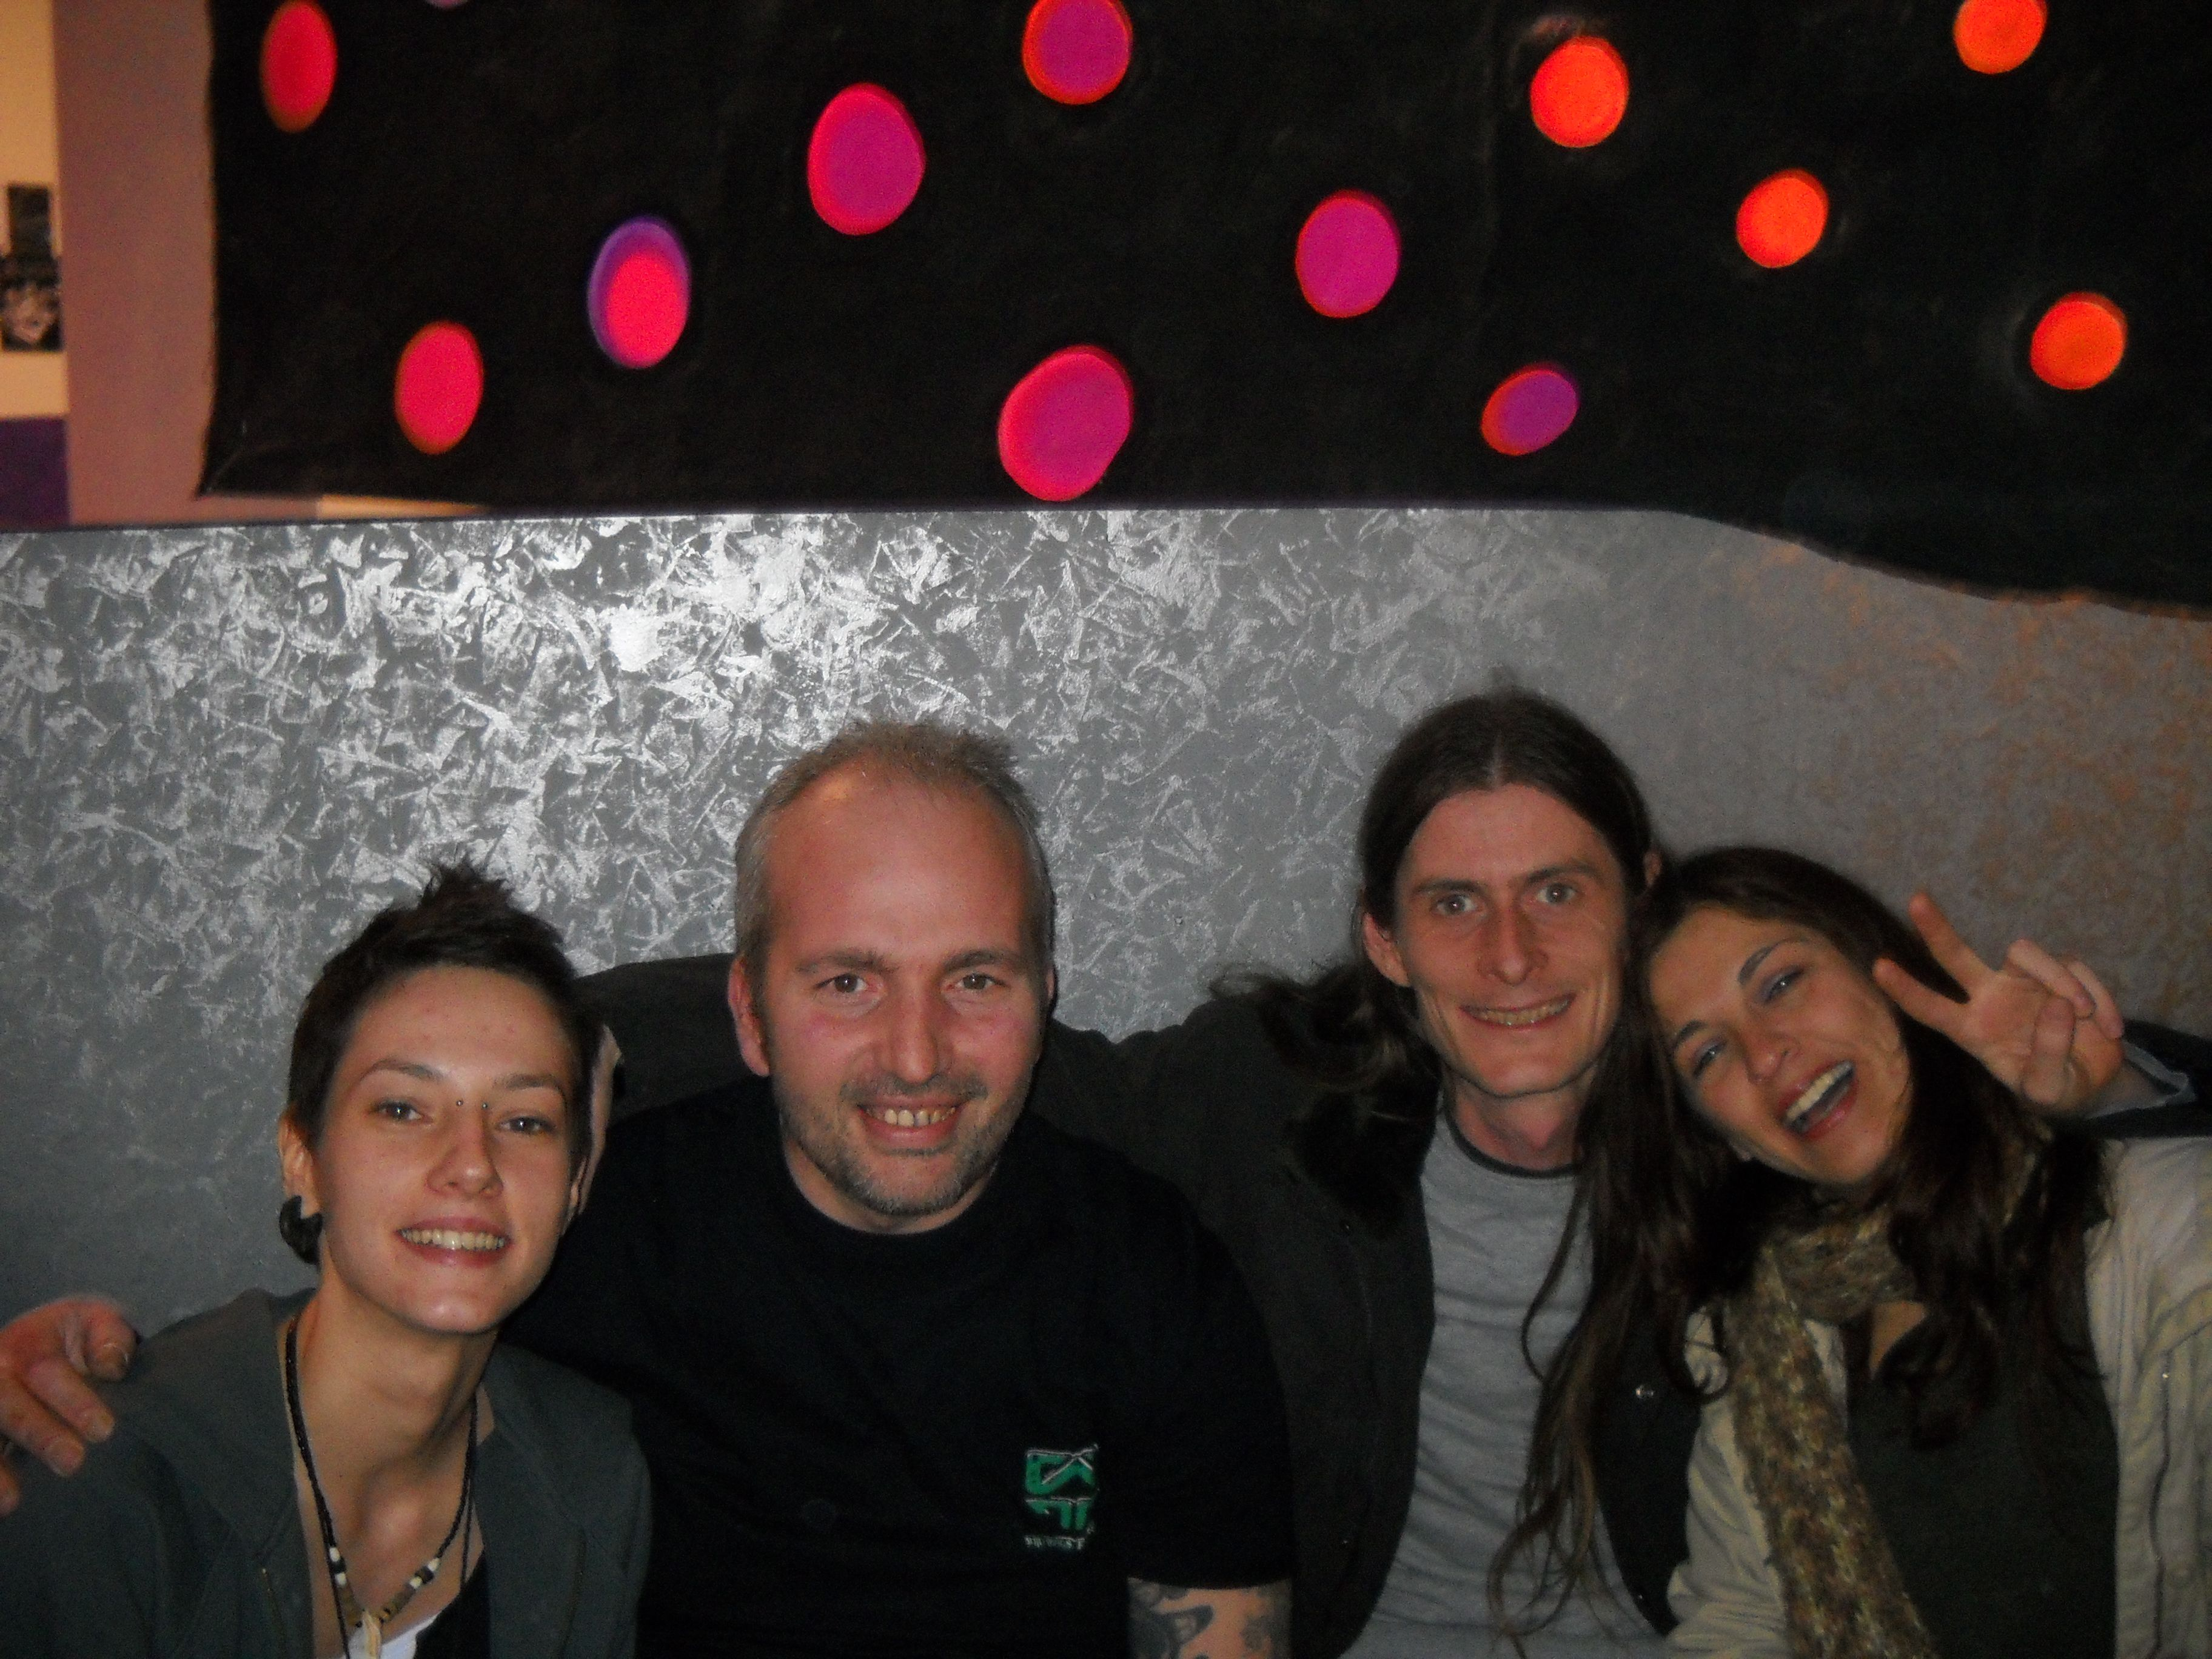 At a party in Italy, Marche 2011 with a bunch of freaks....